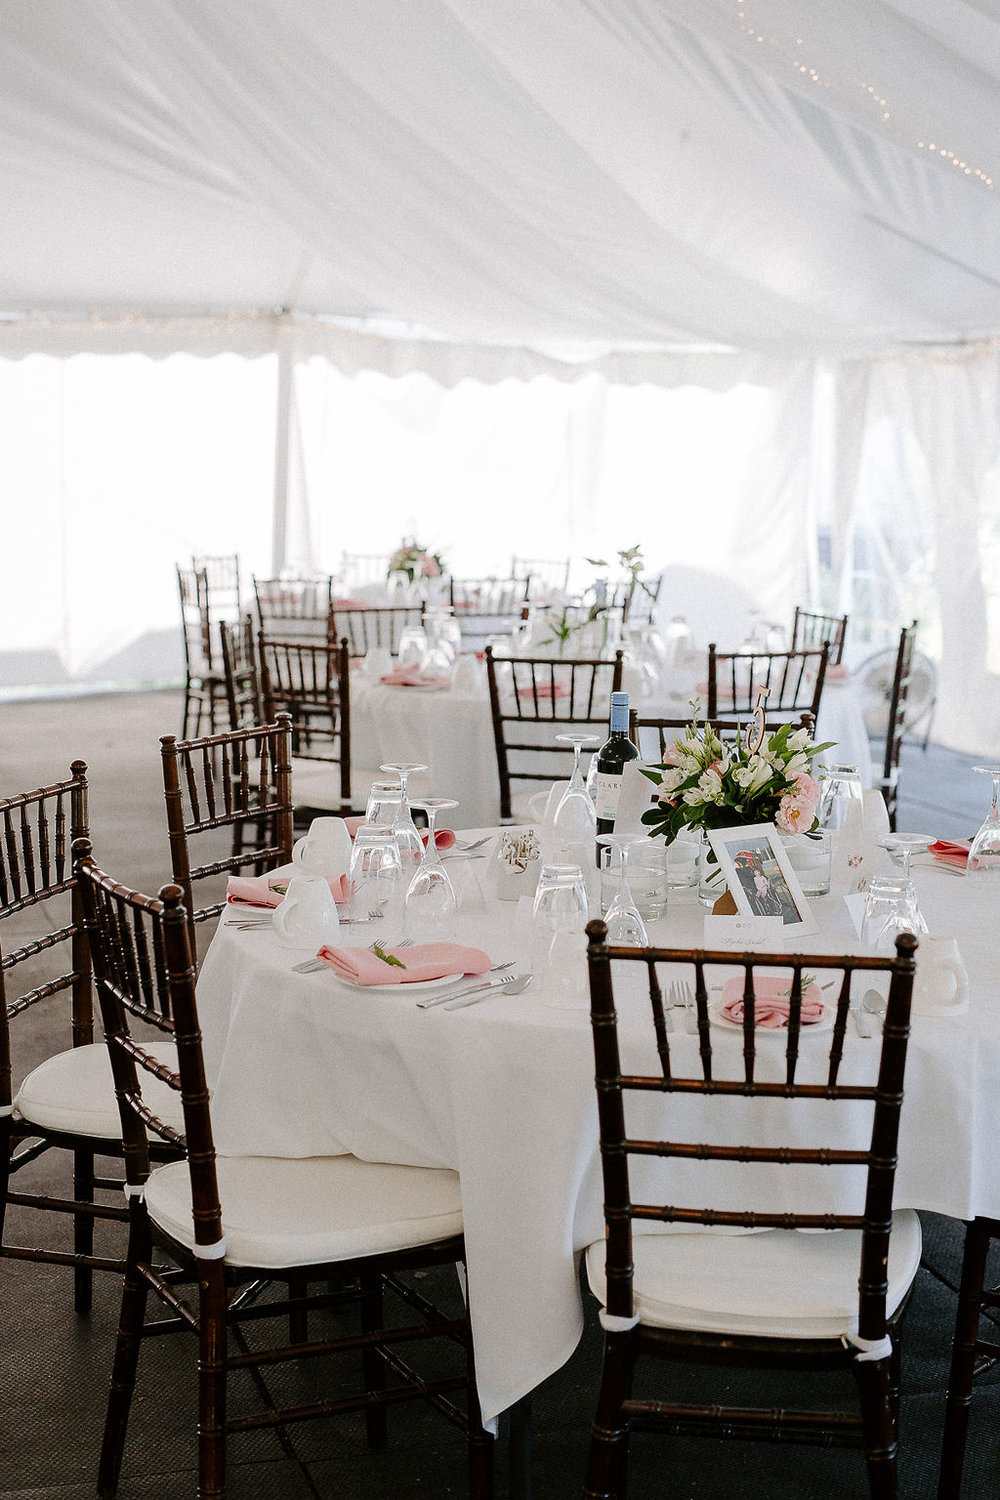 Tent Weddings in Winnipeg - Pineridge Hollow Wedding